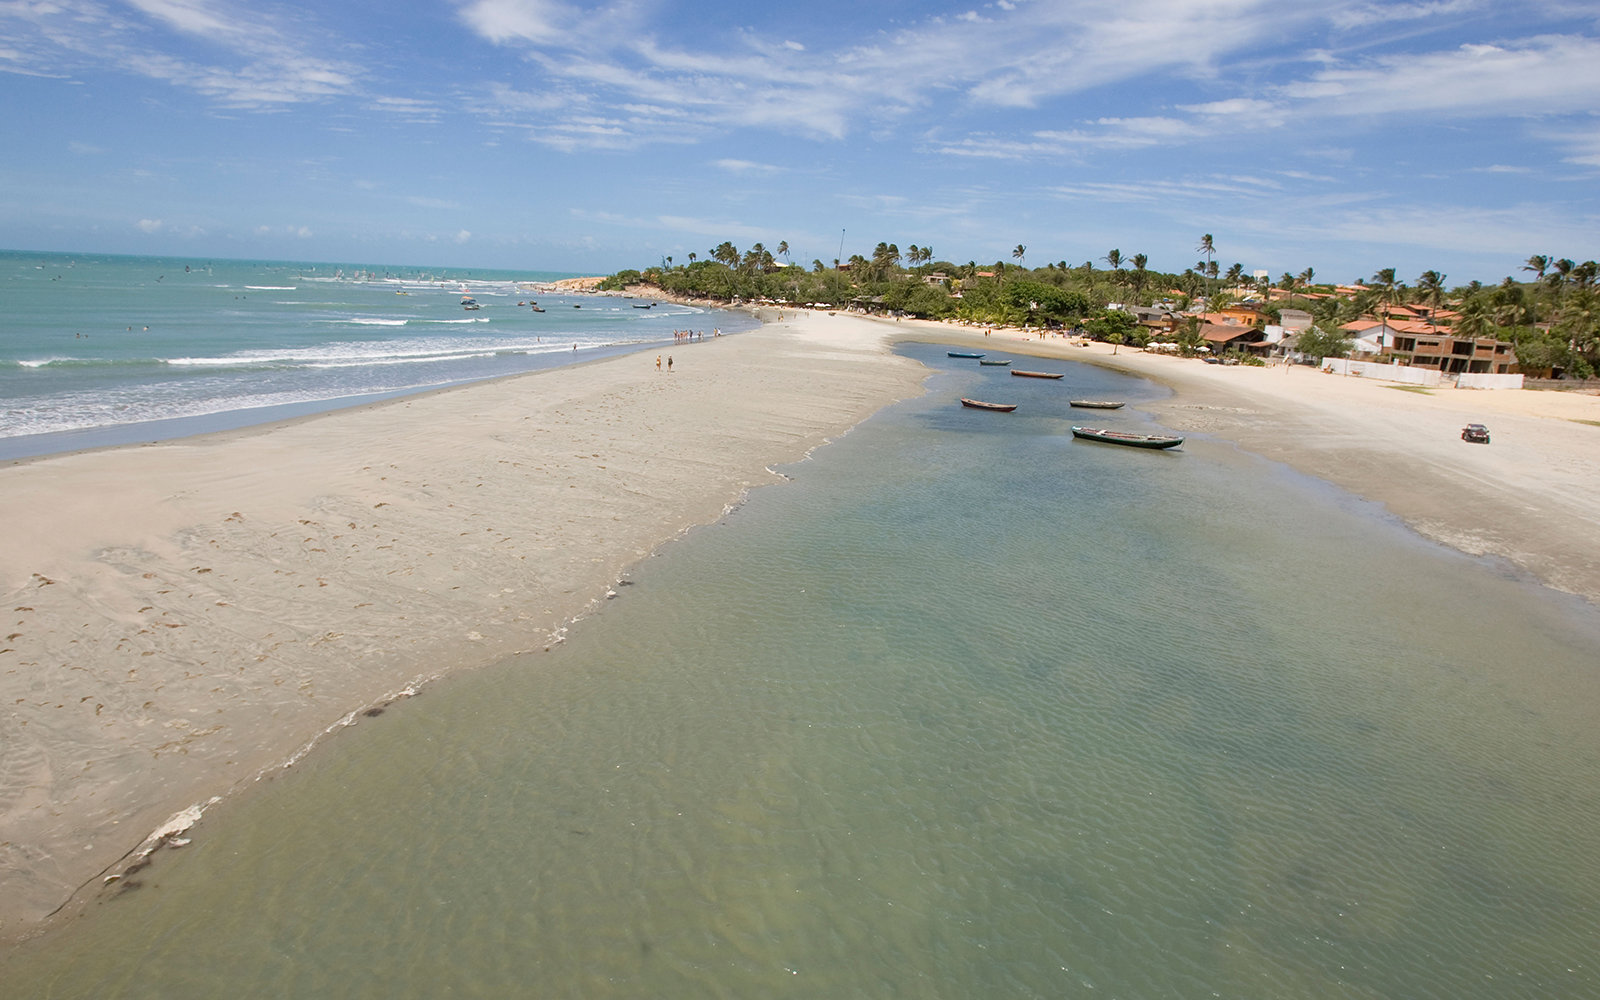 B7RPAH Jericoacoara Beach and Lagoa. Image shot 11/2007. Exact date unknown.